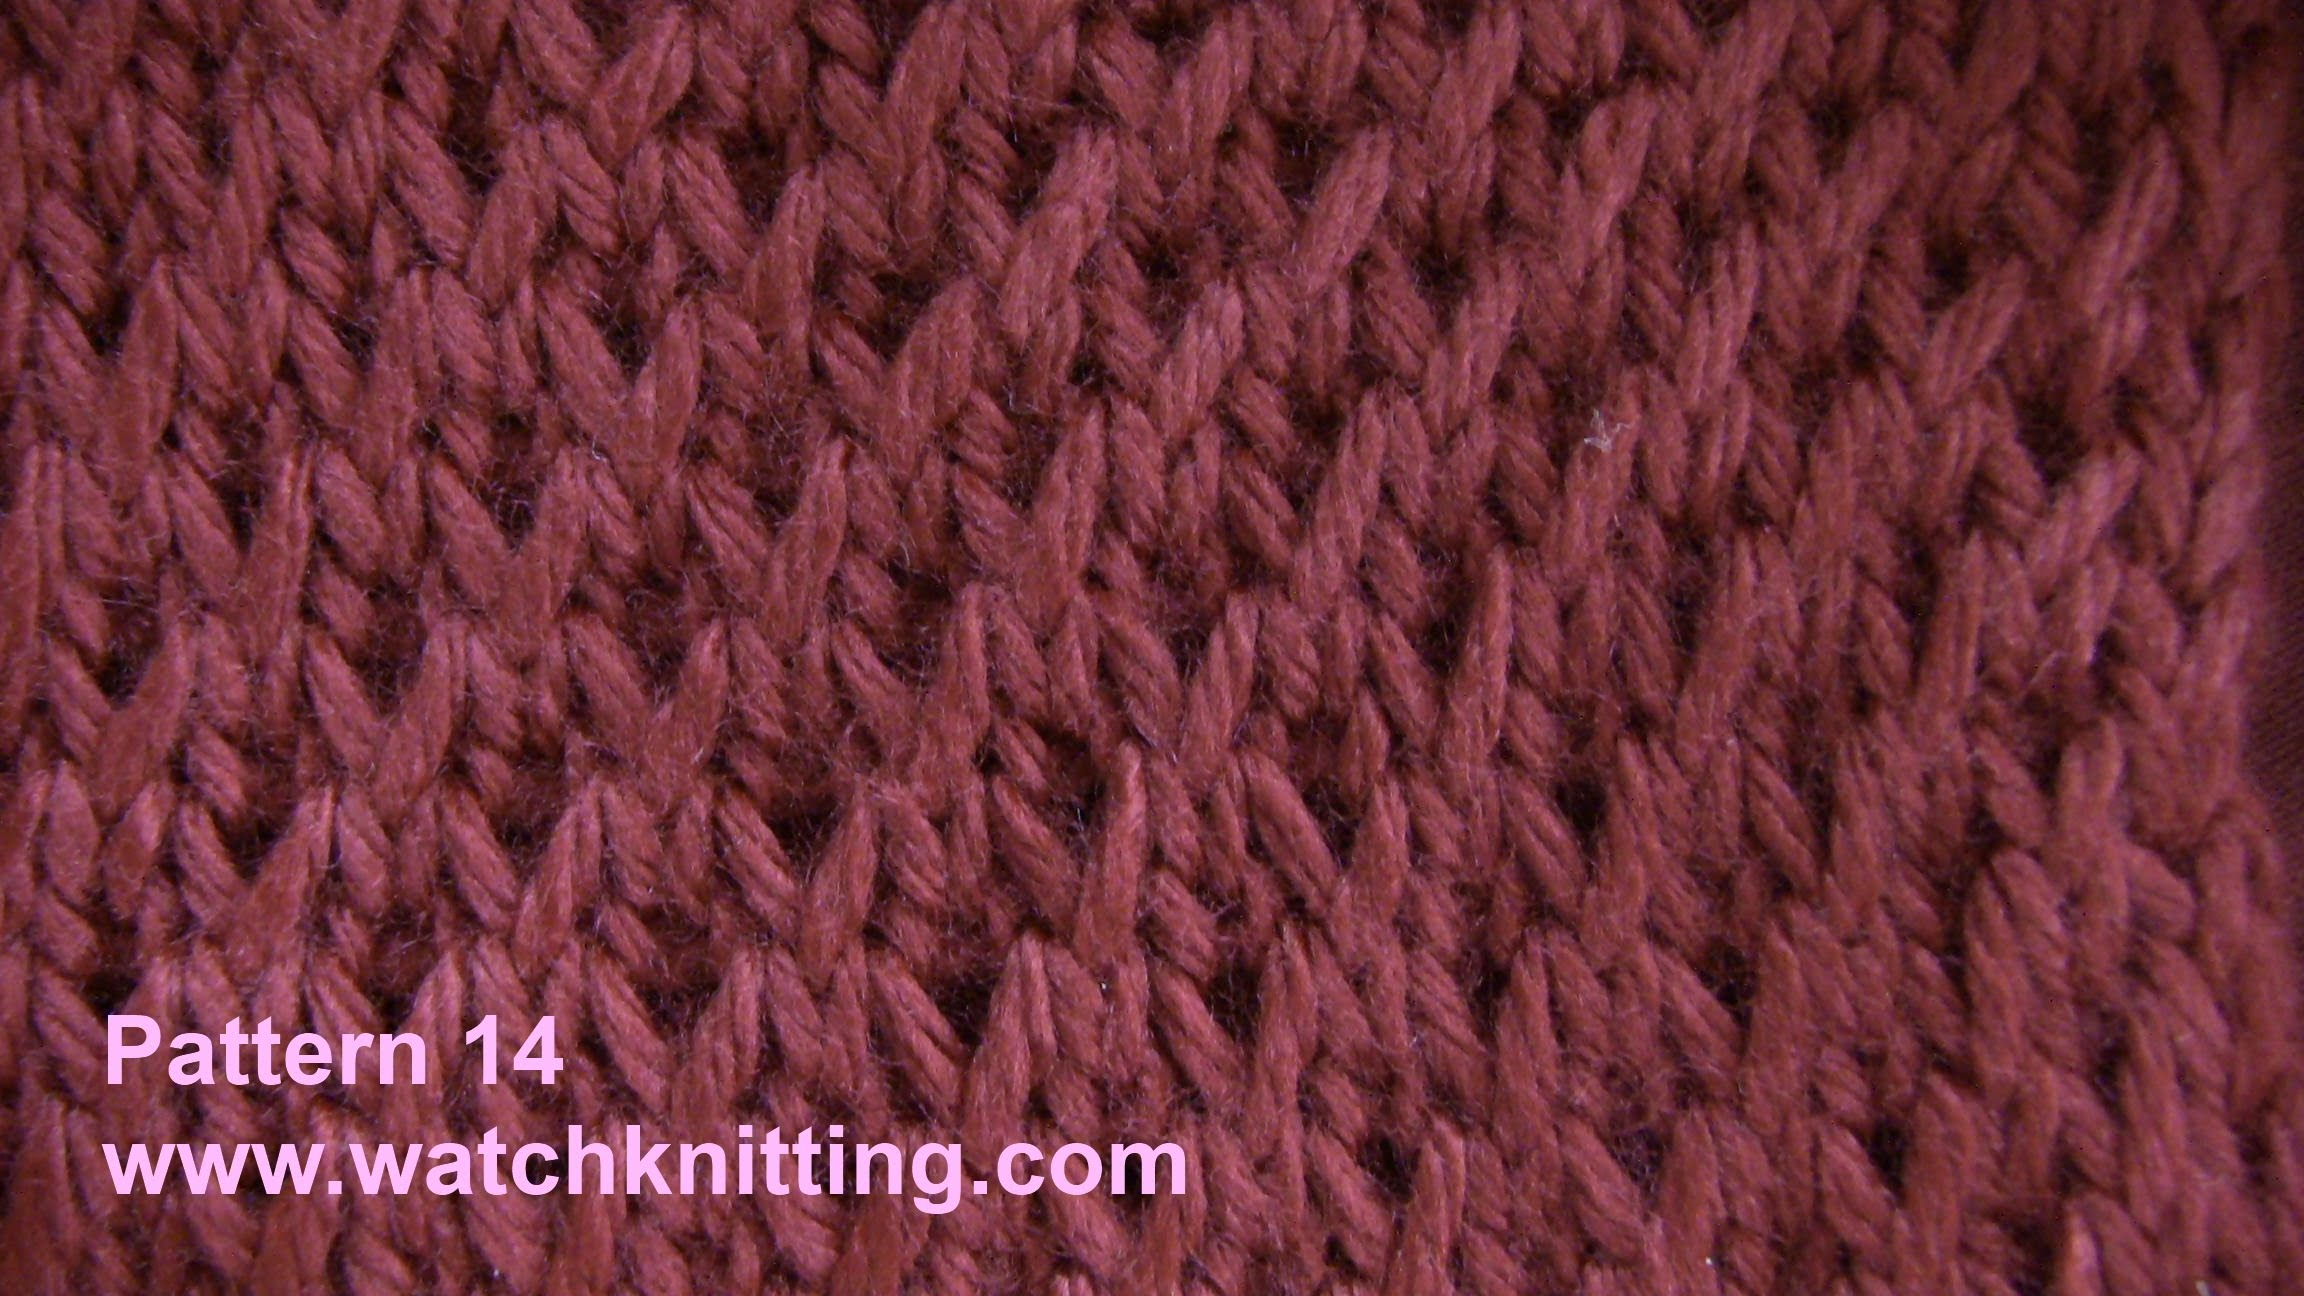 easy knitting patterns simulated brioche stitch - free knitting tutorial - watch knitting - pattern hdnemoc